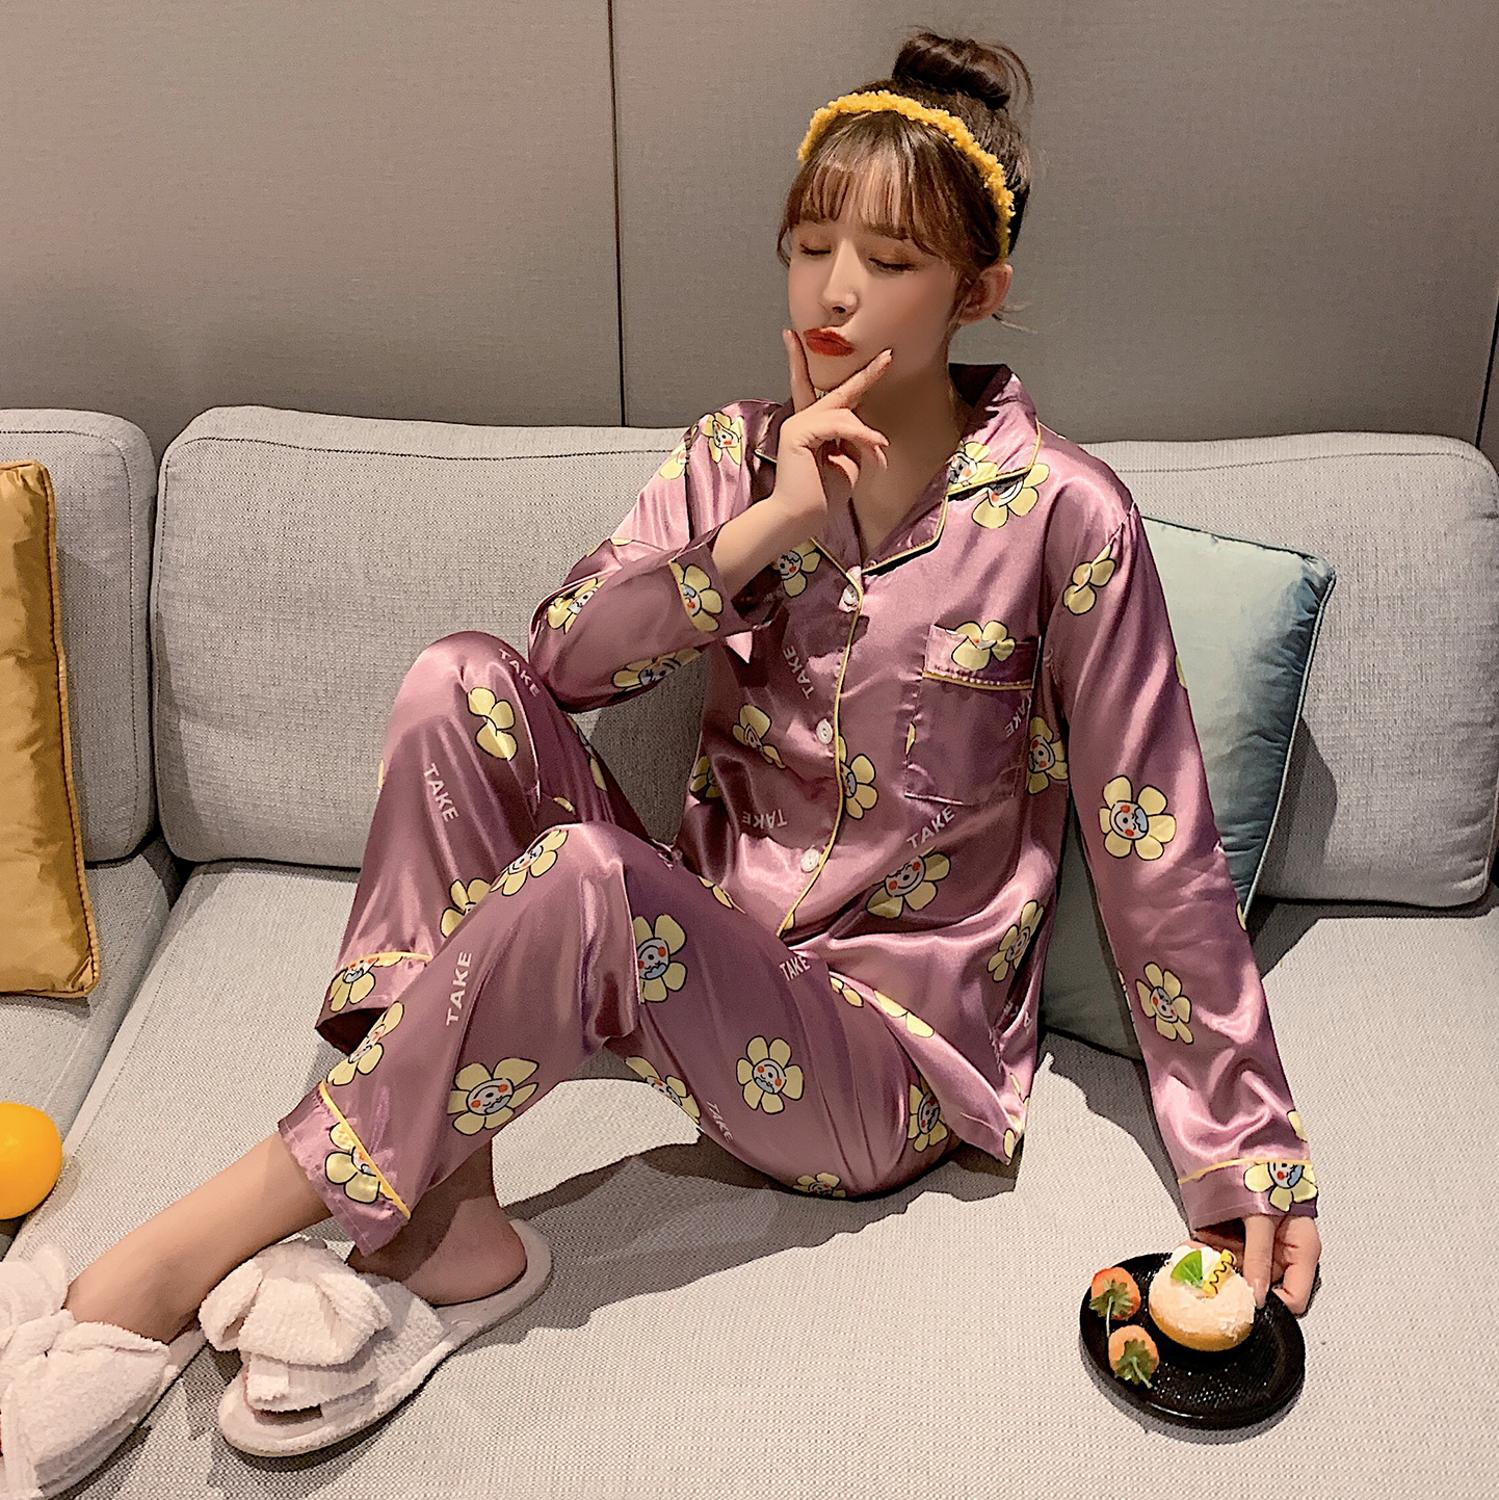 New Fashionable Female Pajama Sets For Women Spring Summer 2 Pcs Long Sleeve&Pangts Loose Comfortable Home Suits